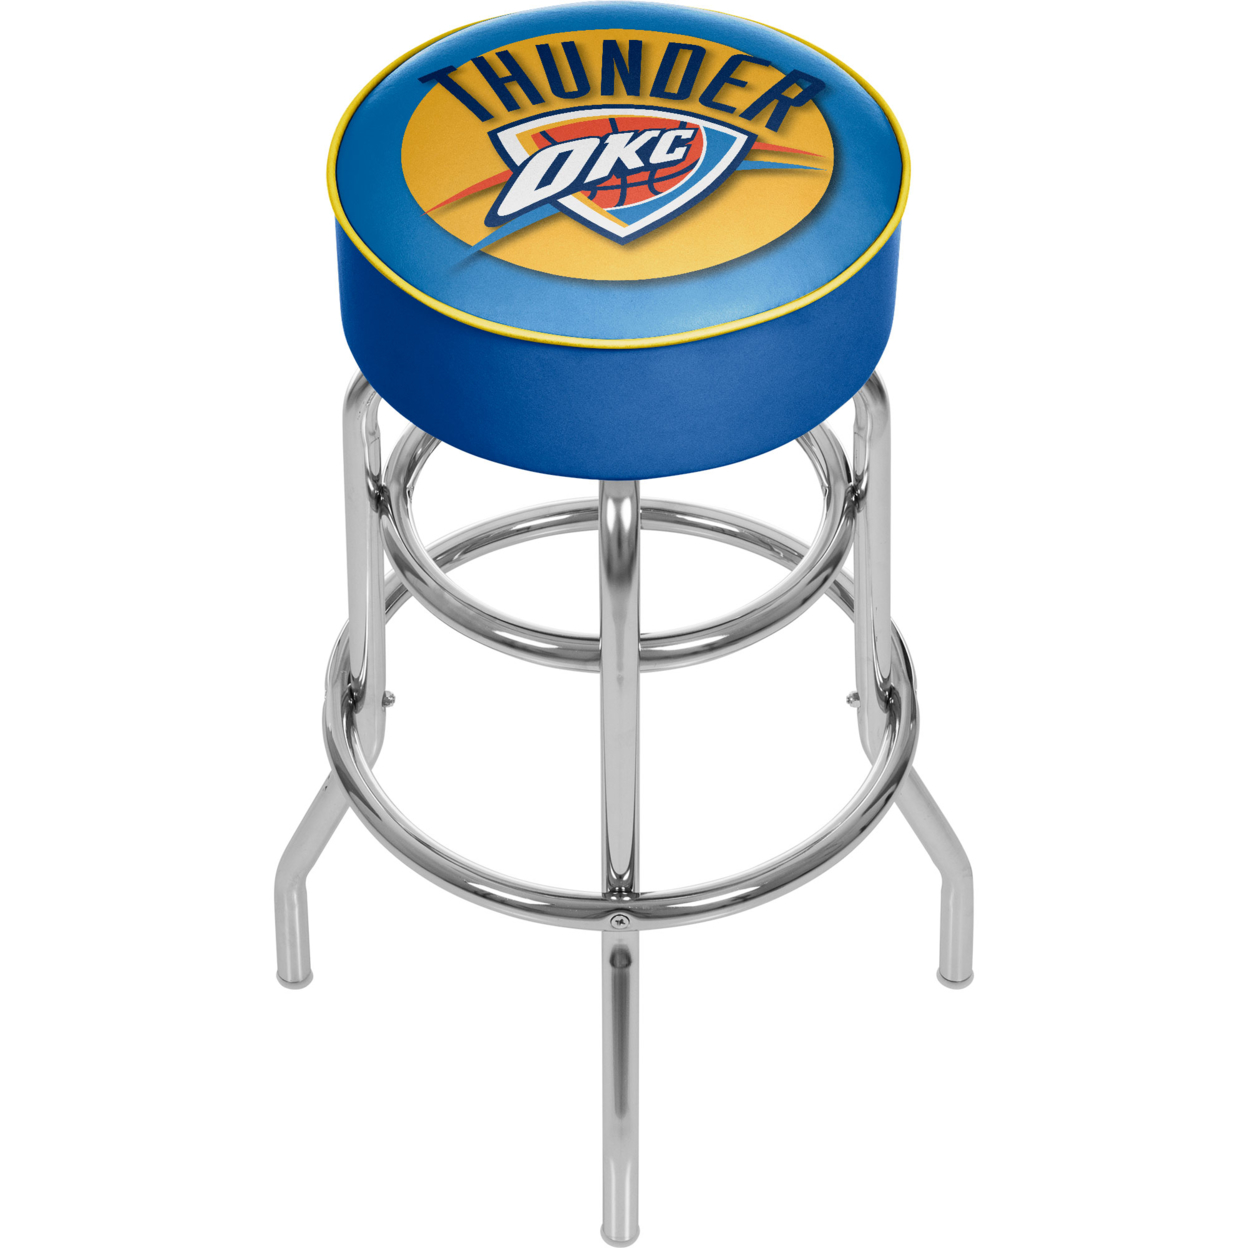 Oklahoma City Thunder NBA Padded Swivel Bar Stool 30 Inches High фанатская атрибутика nike curry nba